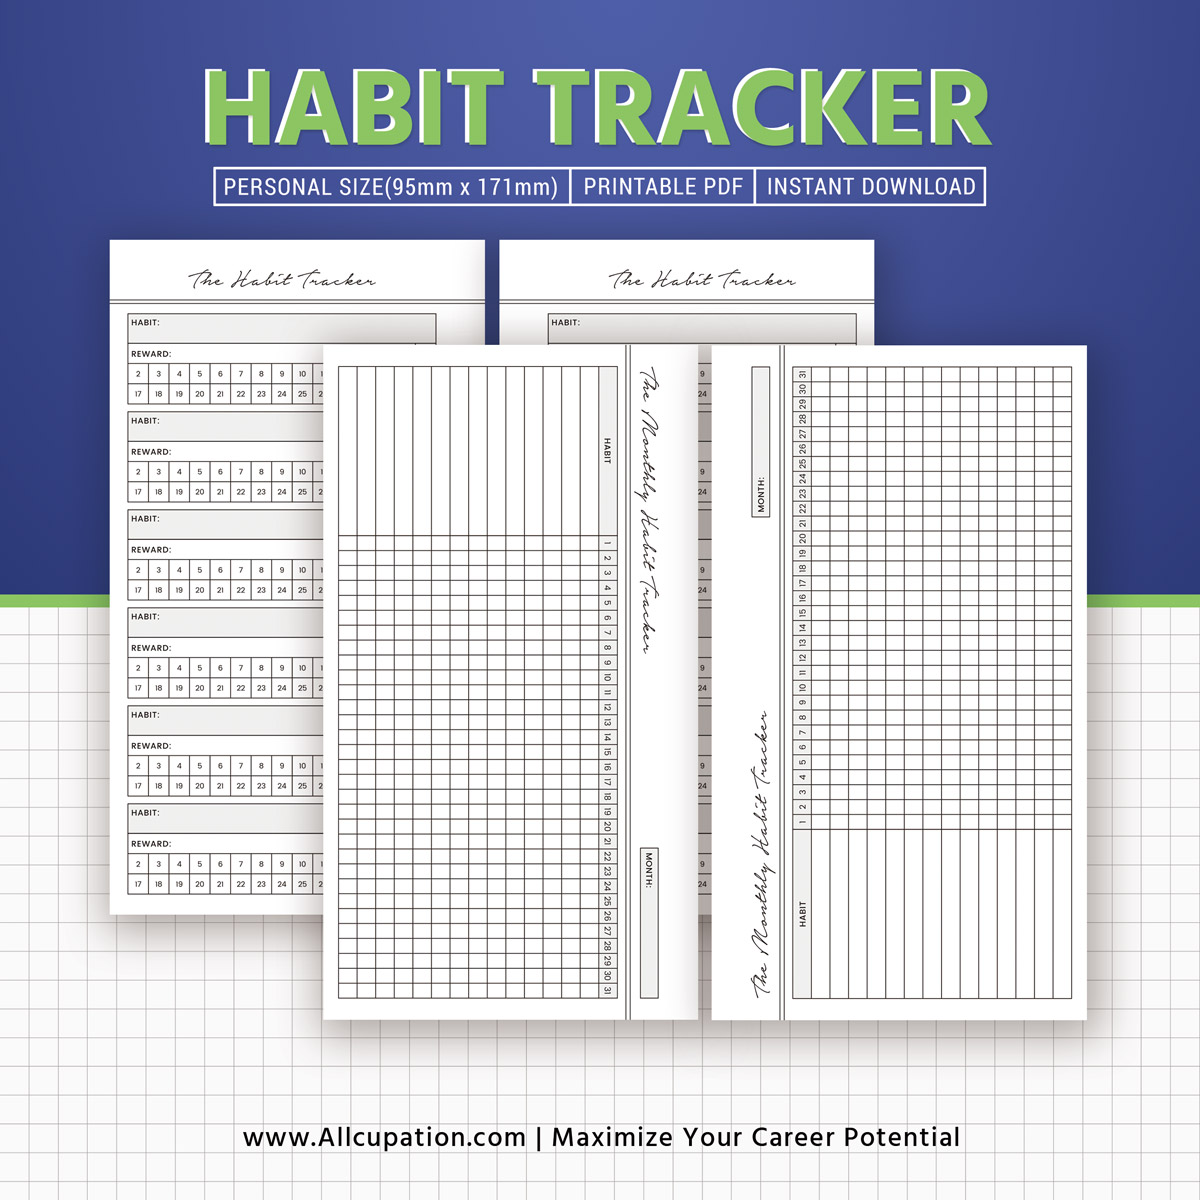 2019 habit tracker  monthly habit tracker inserts  habit